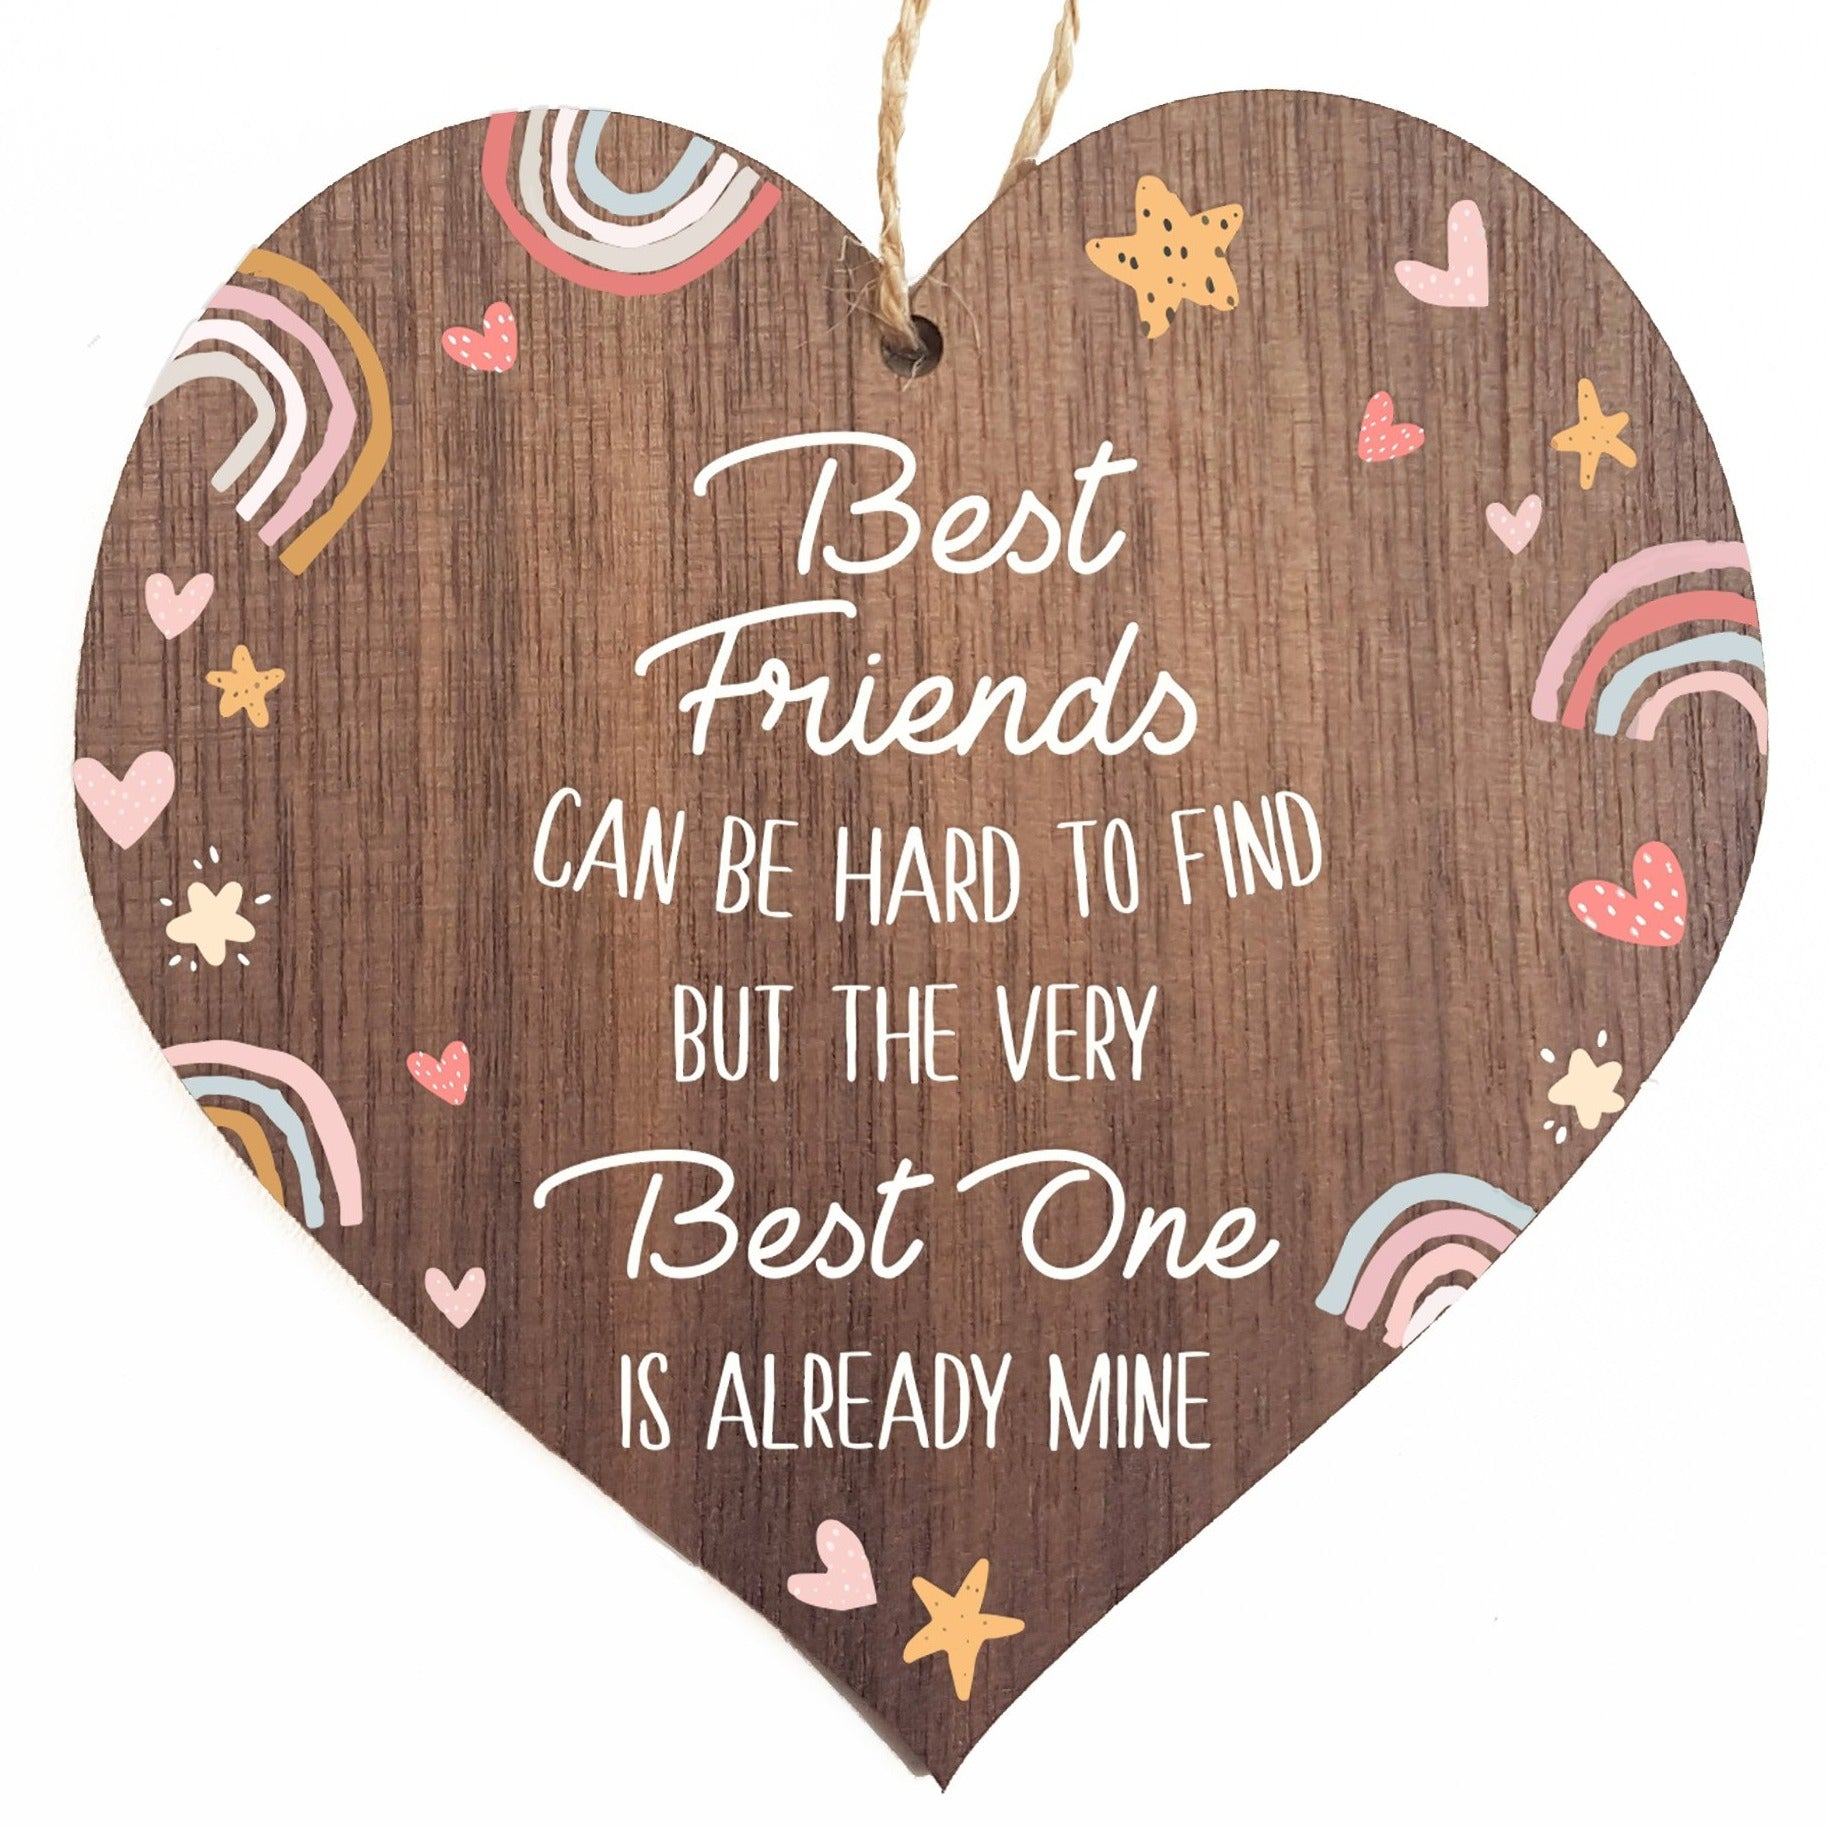 Best friends can be hard to find decorative plaque or sign